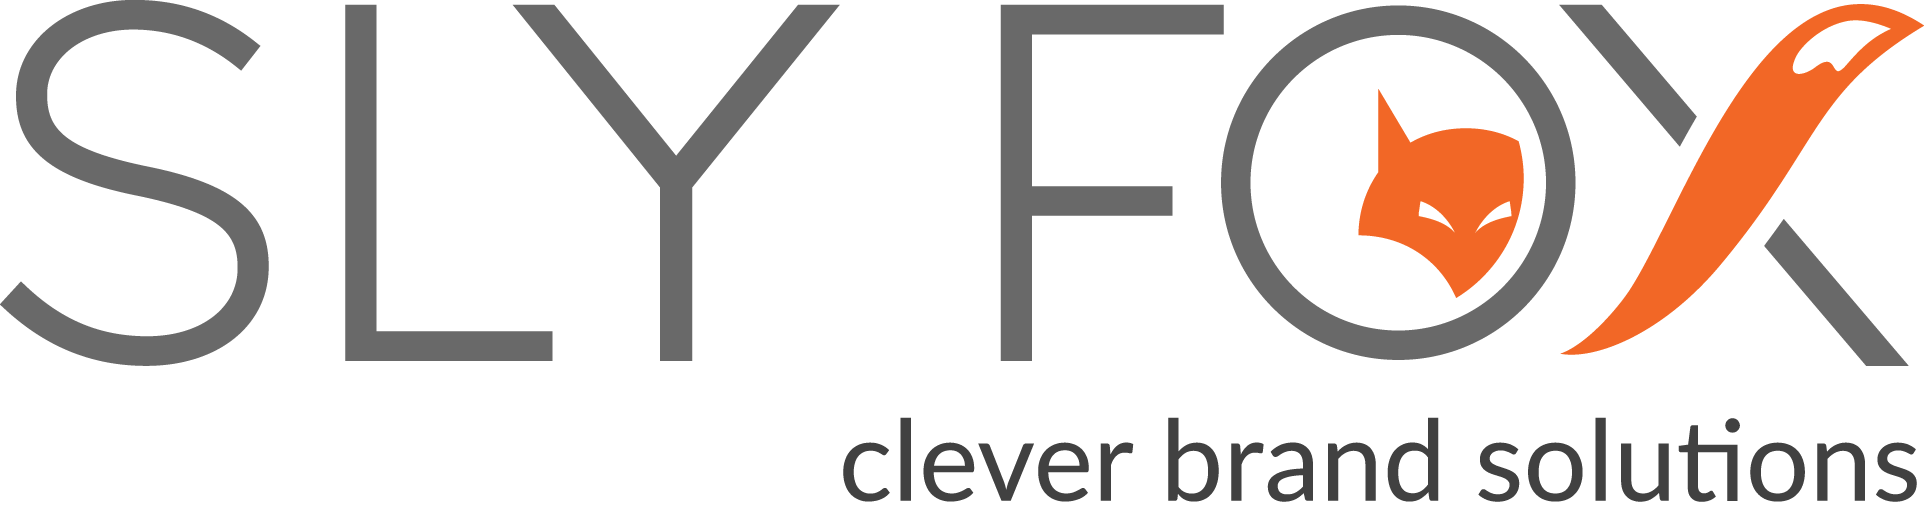 Sly Fox - Clever Brand Solutions